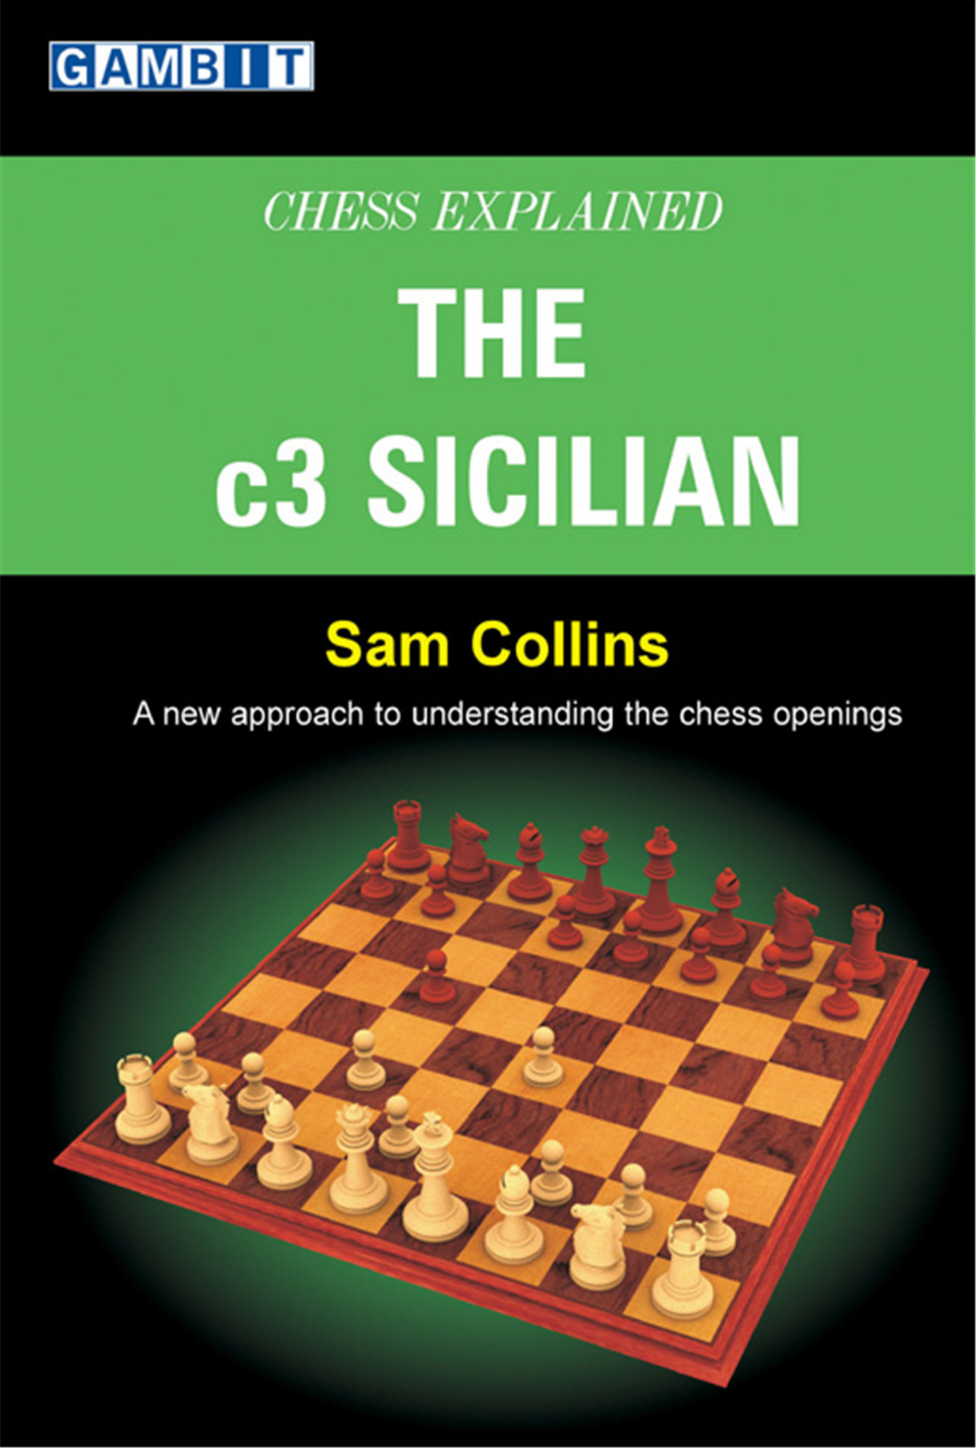 Chess Explained The c3 Sicilian